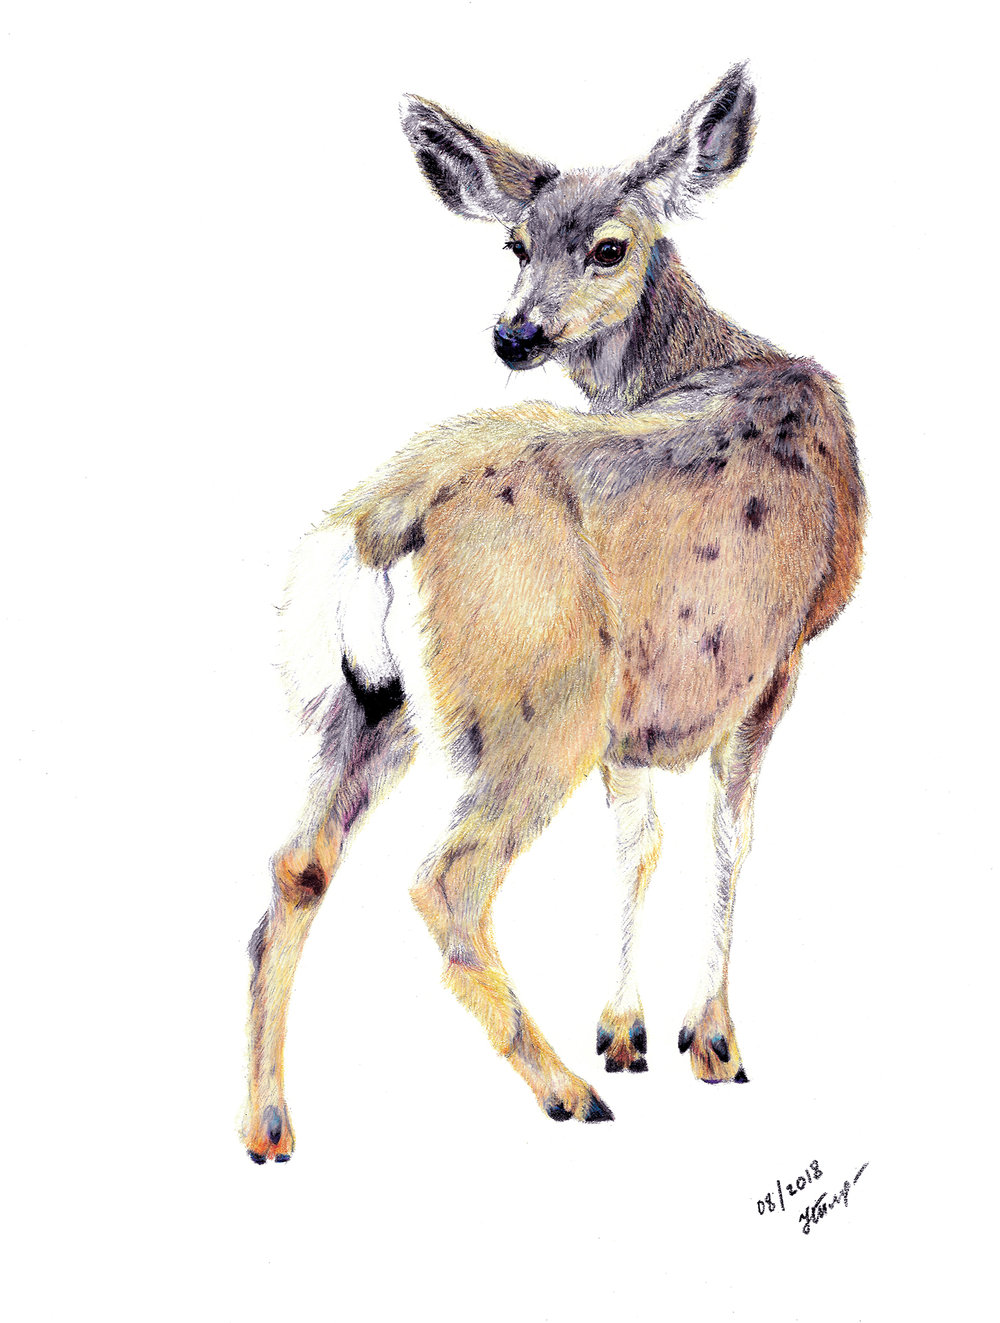 DEER  • 14 X 11 • COLORED PENCILS ON PAPER •  $2,000